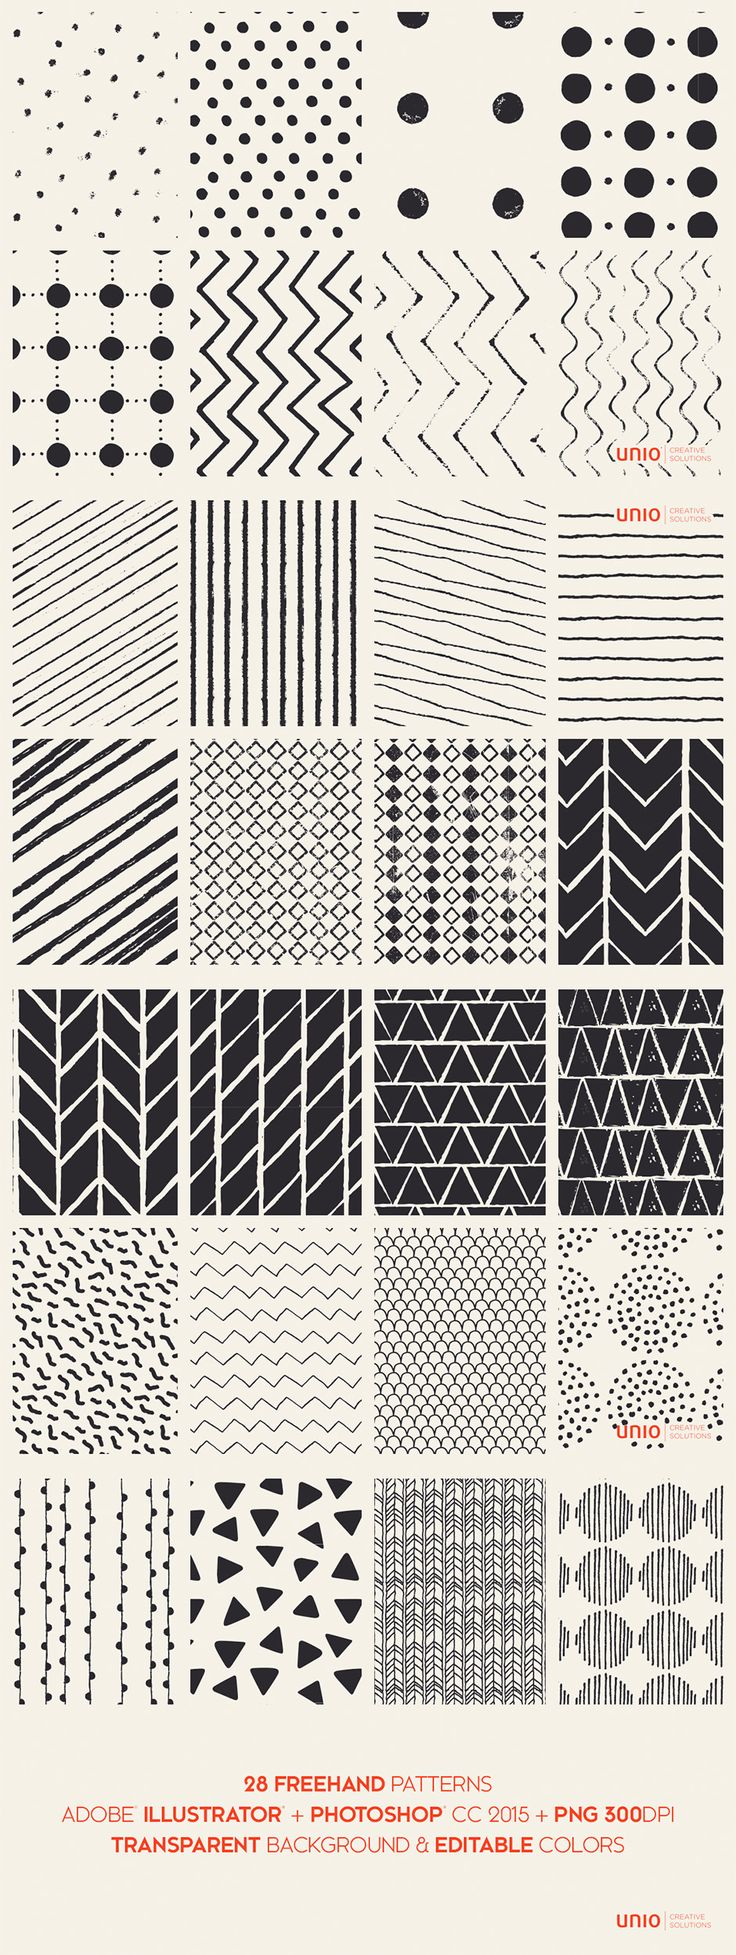 Freehand Patterns  -  https://www.designcuts.com/product/freehand-patterns/